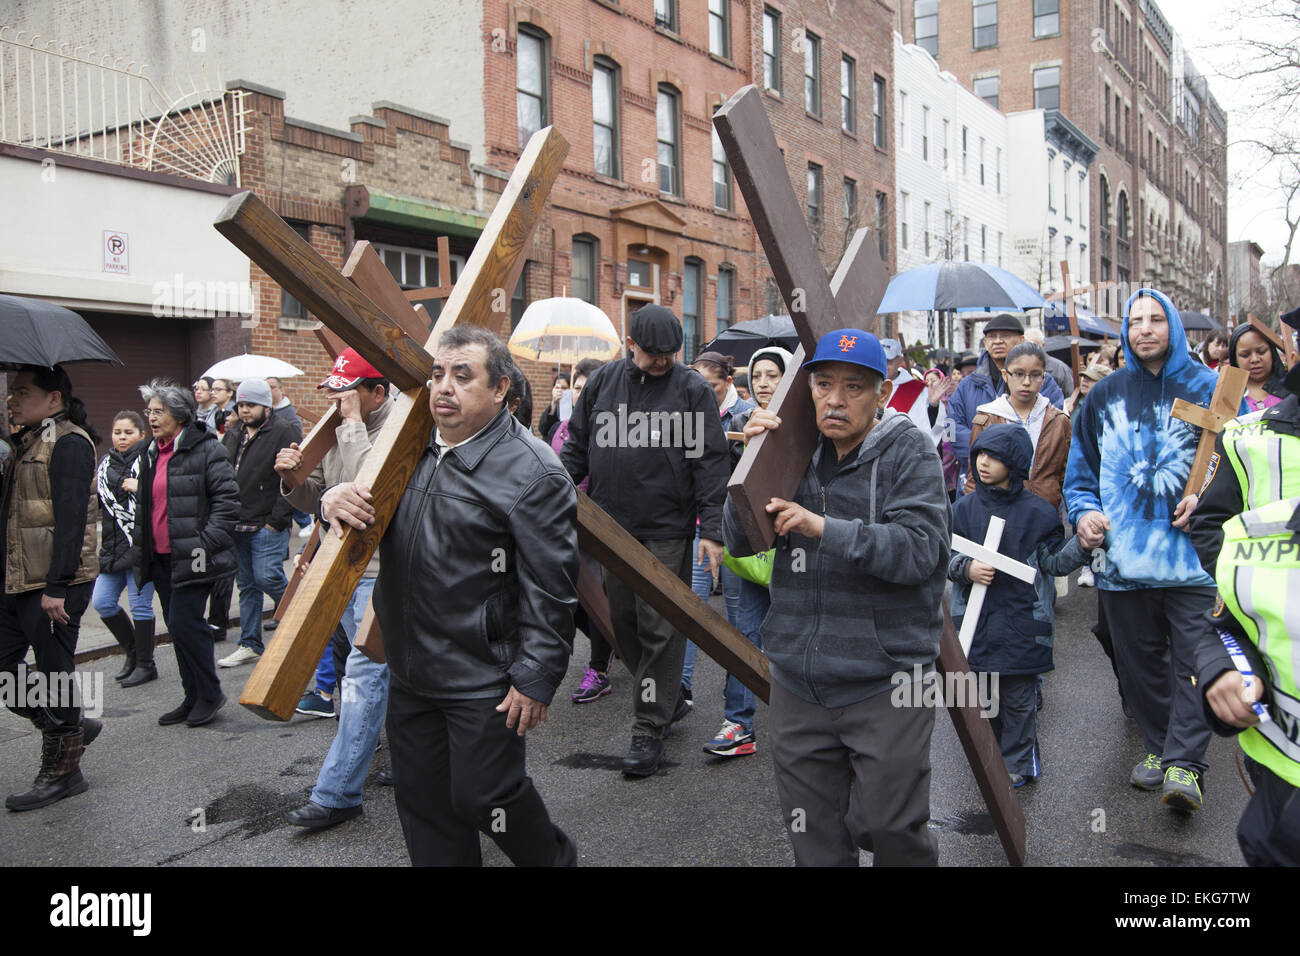 Good Friday procession of The Stations Of The Cross recited in English, Spanish & Polish in Park Slope, Brooklyn, - Stock Image